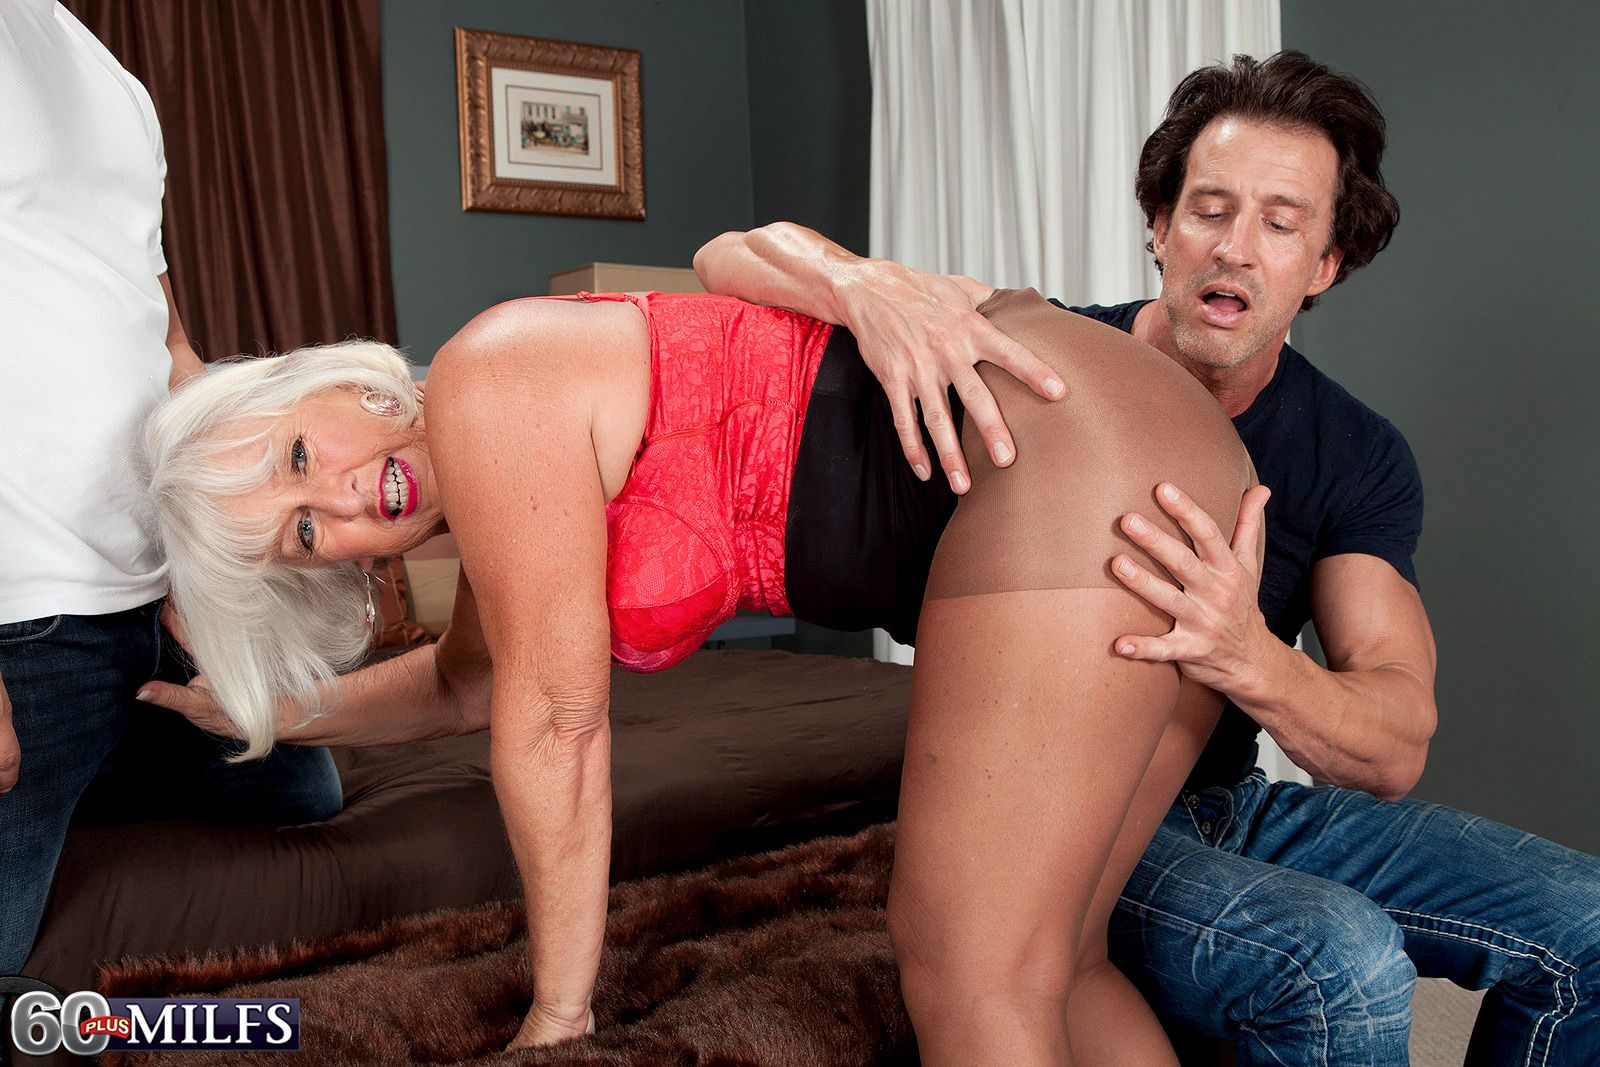 Mature pornstar Jeannie Lou gets fucked by two younger cocks in wild MMF threeway